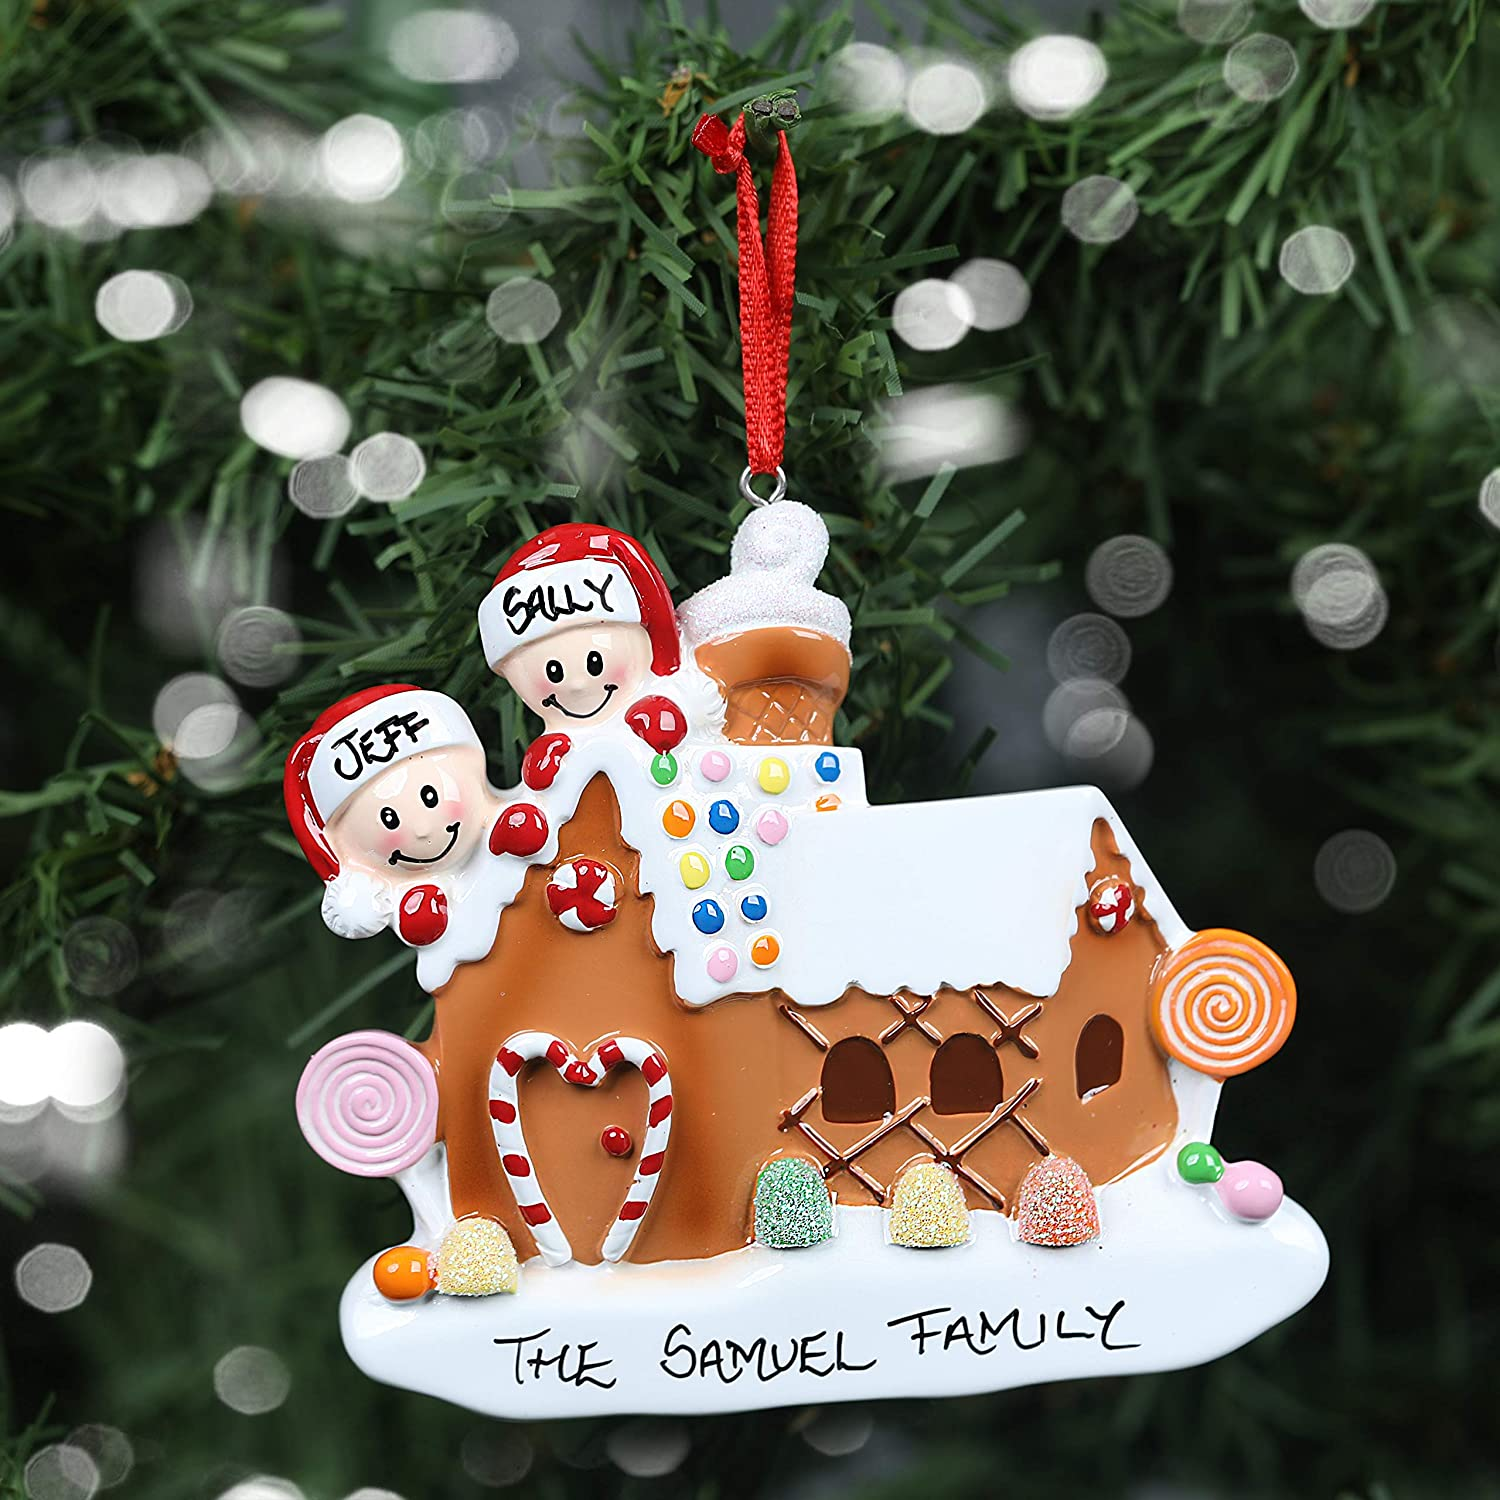 Personalised Hand Crafted Custom Gingerbread House Christmas Tree Decorations Xmas Bauble Ornaments Family of 2,3,4,5 or 6